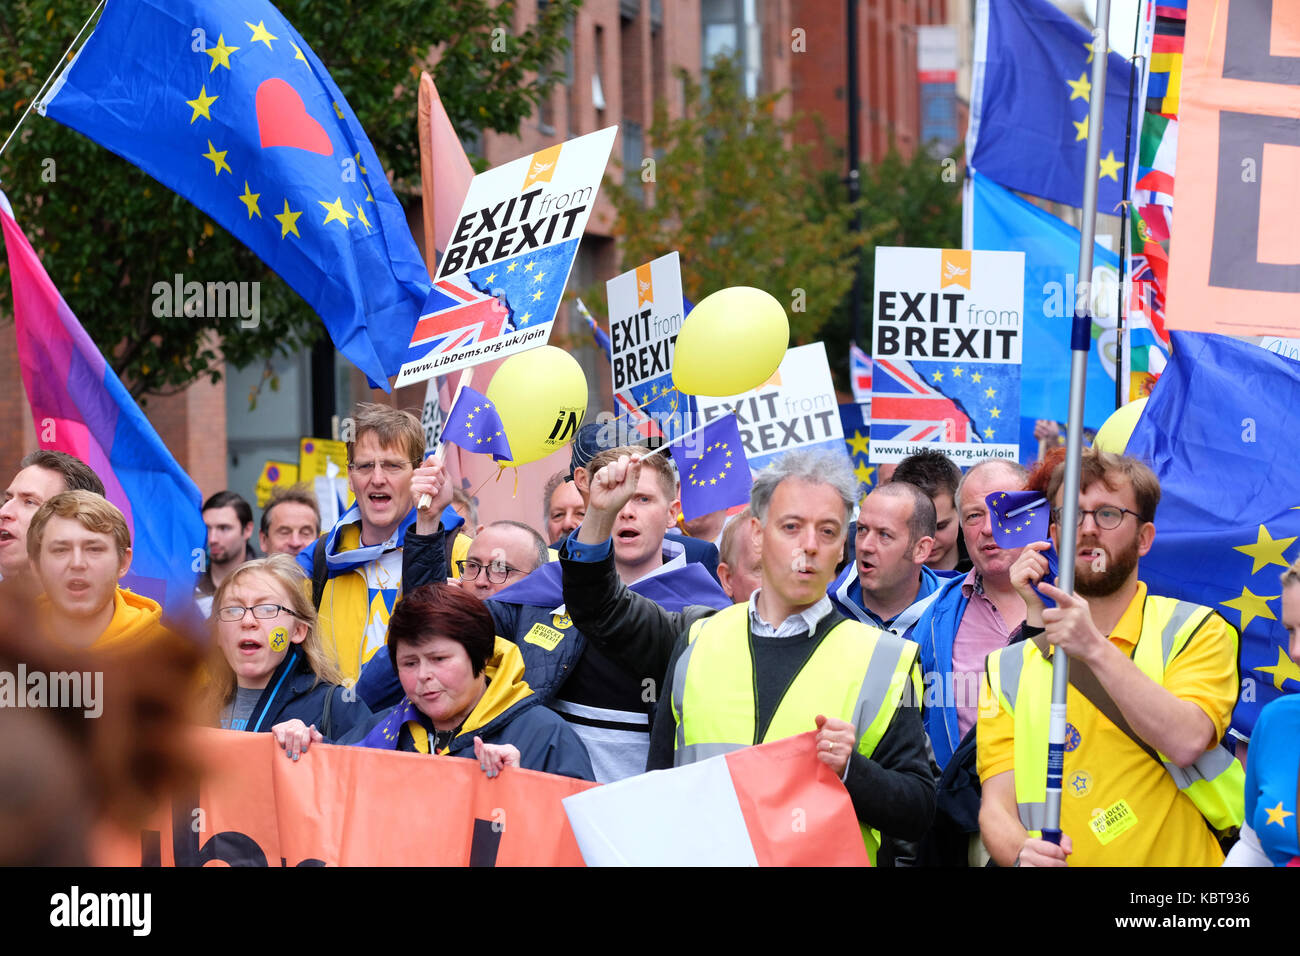 Stop Brexit march, Manchester city centre, Sunday 1st October 2017 - Large protest by thousands of Stop Brexit supporters Stock Photo